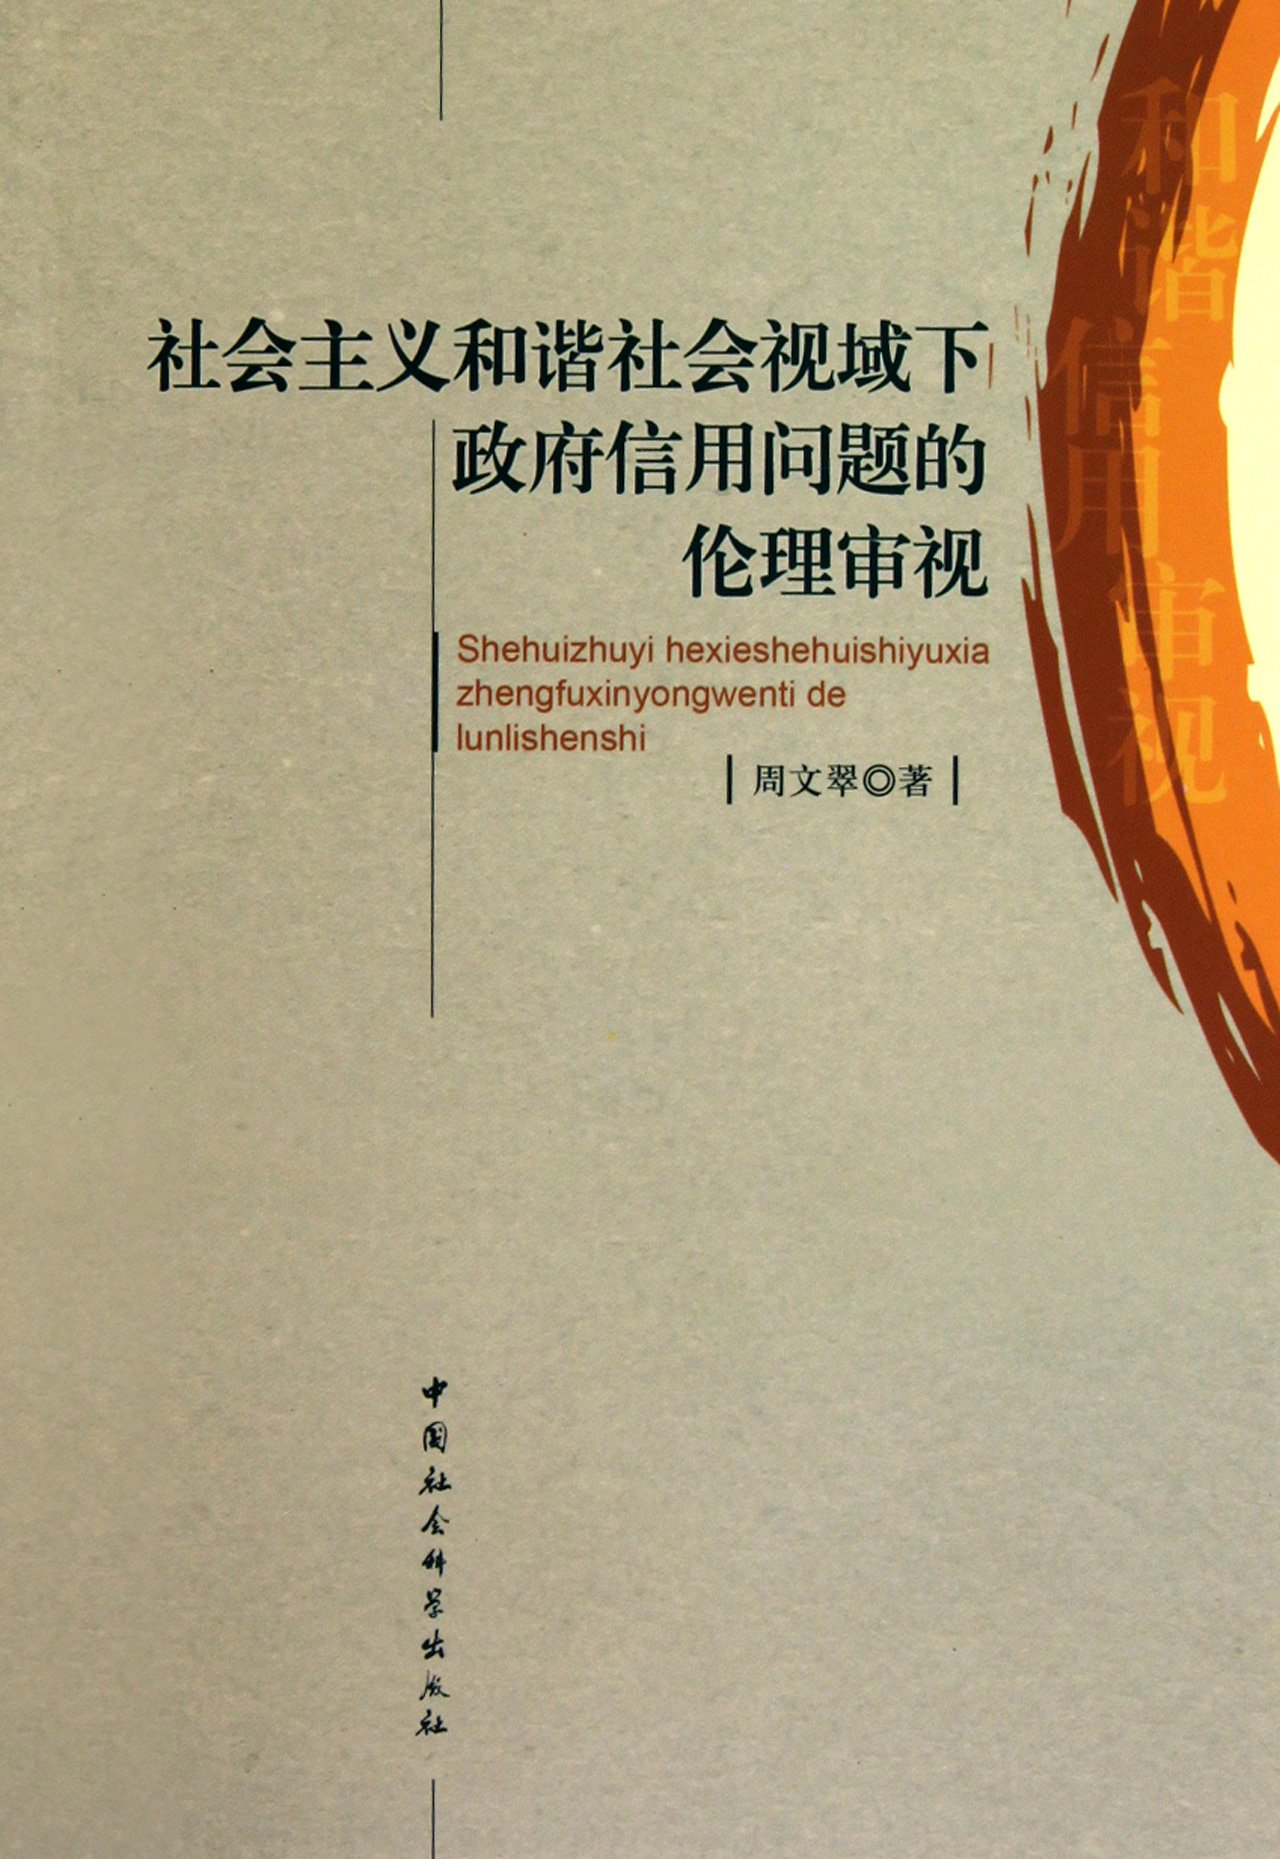 Download Ethical Review of Governmental Credit in the Perspective of Harmonious Socialist  Society (Chinese Edition) ebook